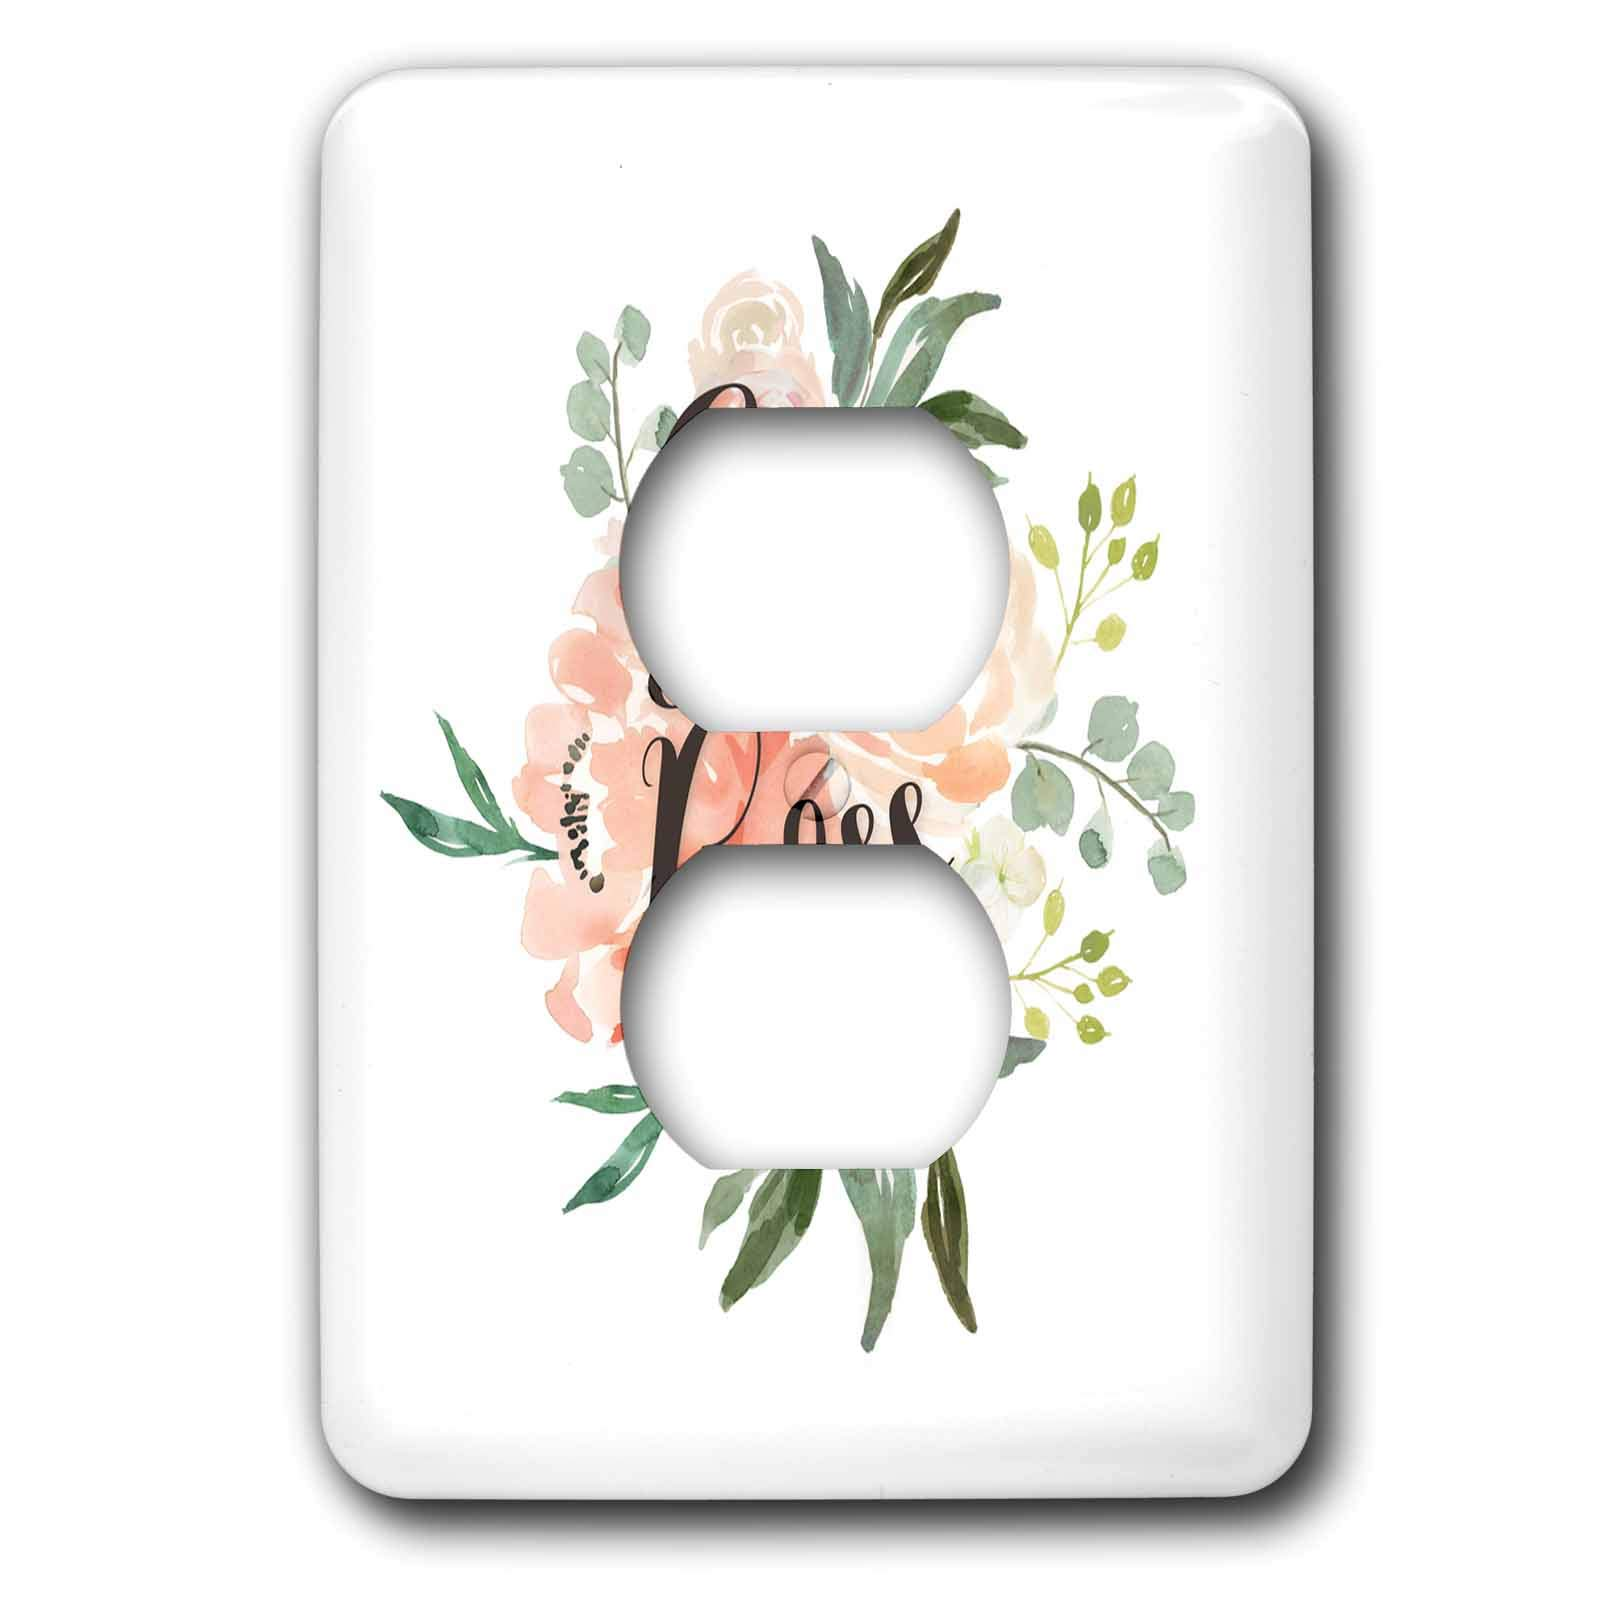 3dRose Becky Nimoy Stationery – Women - Girl Boss in Modern Calligraphy over Spring Watercolor flowers - Light Switch Covers - 2 plug outlet cover (lsp_289195_6)